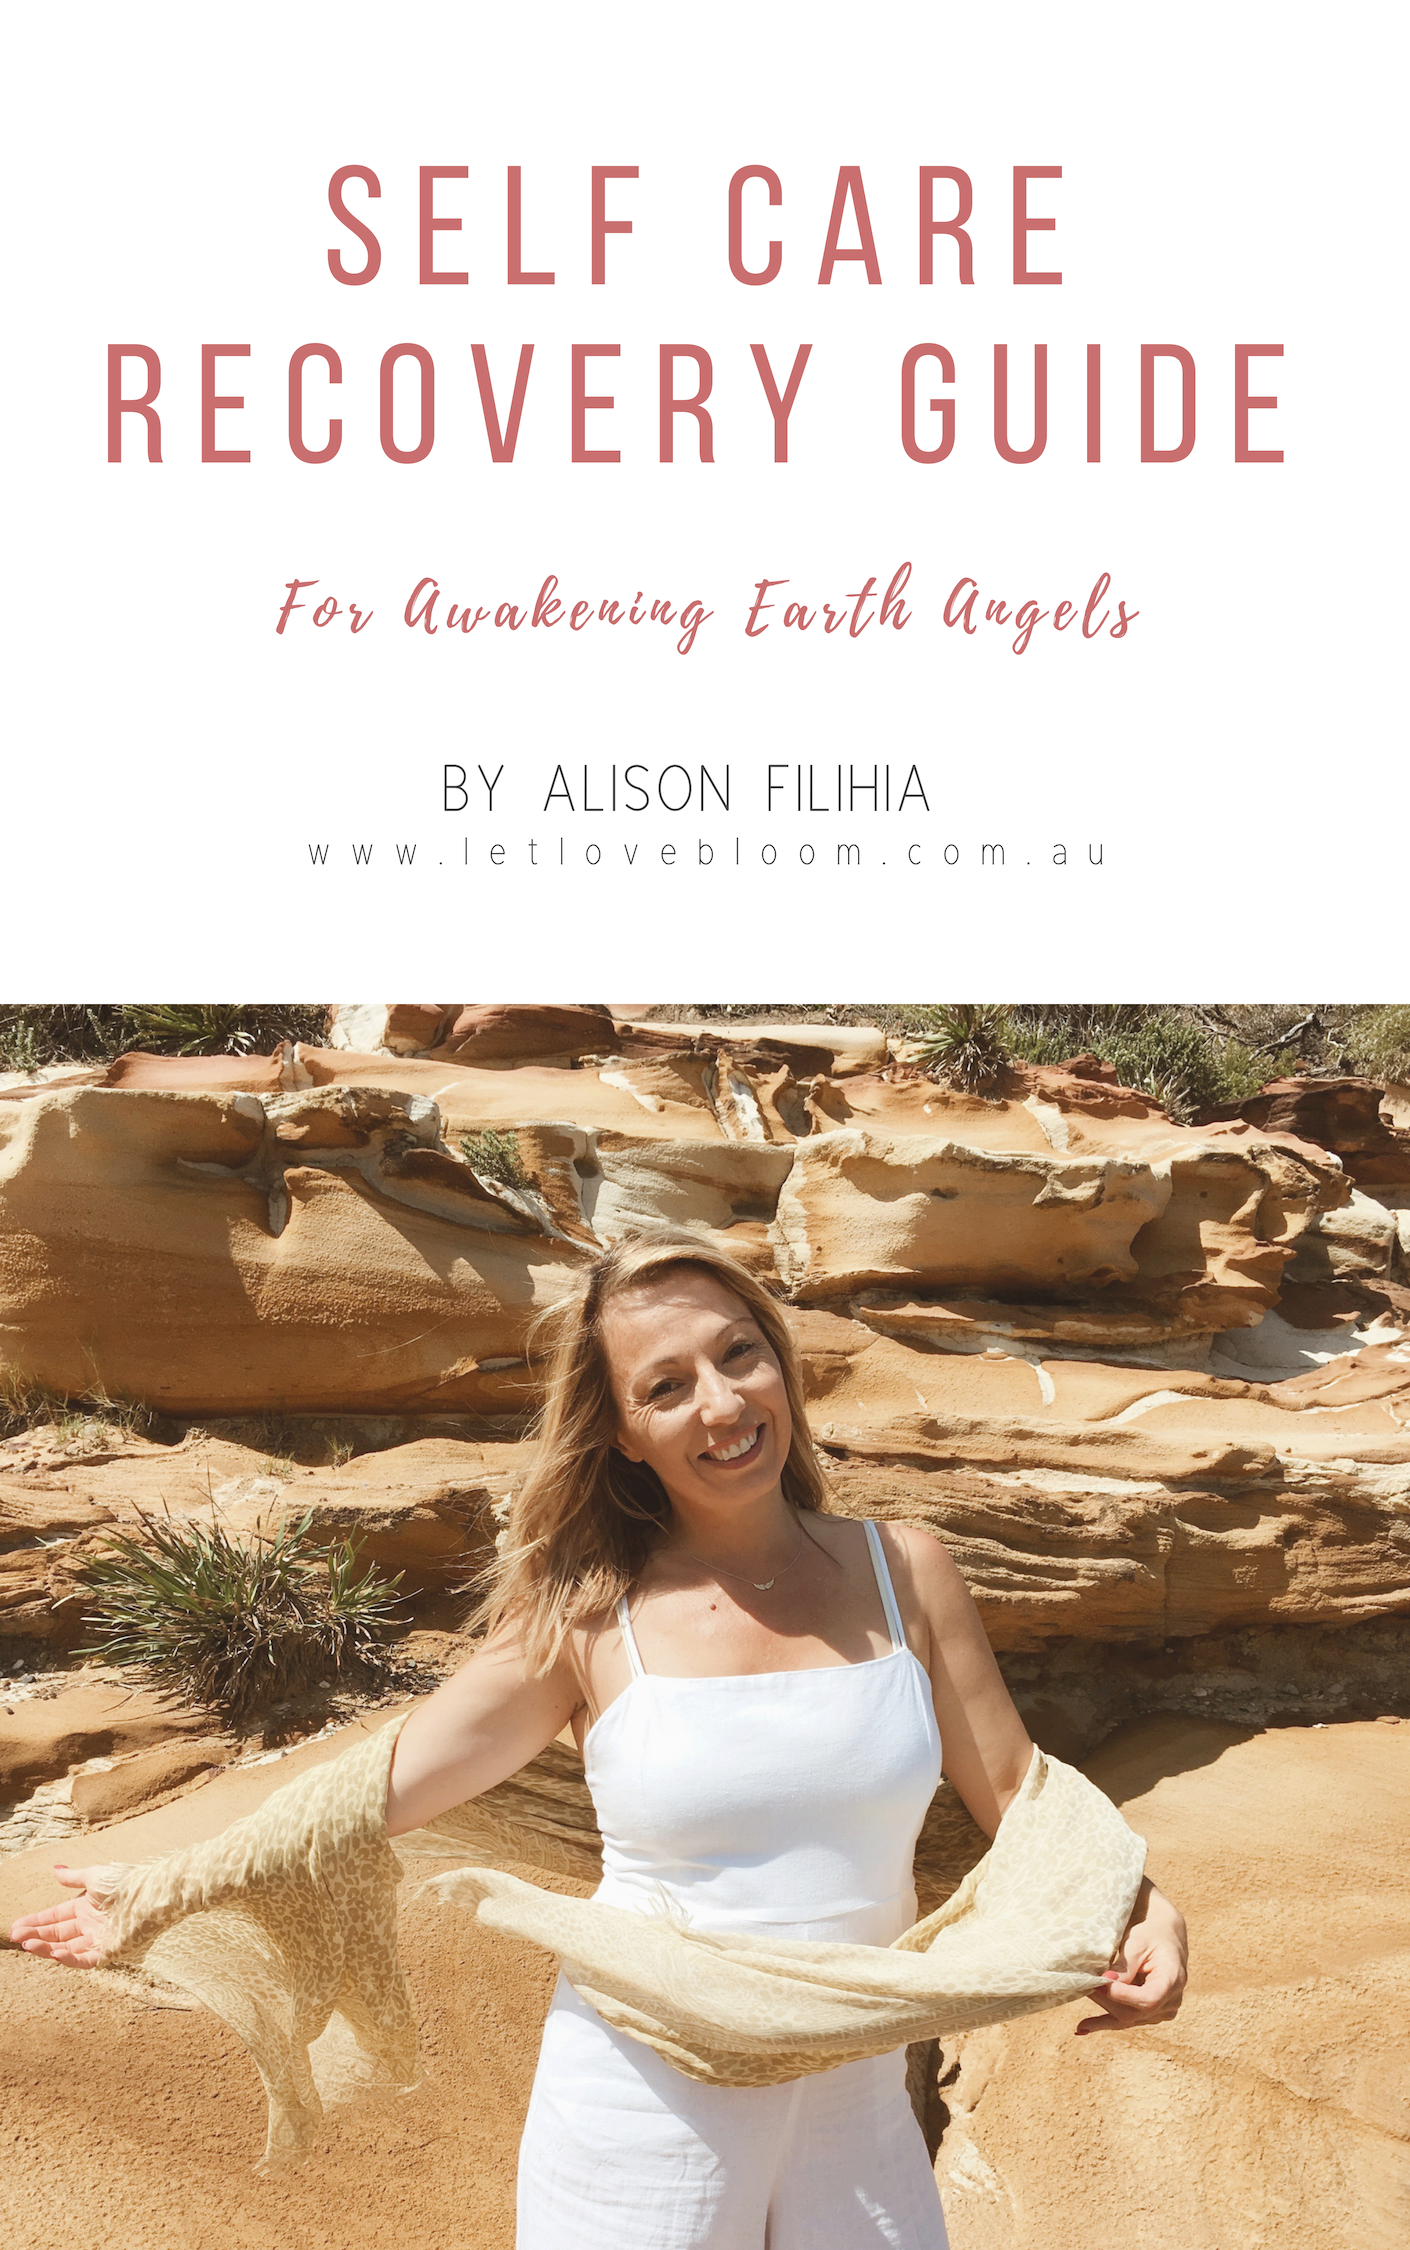 Self care Recovery Guide (1).png